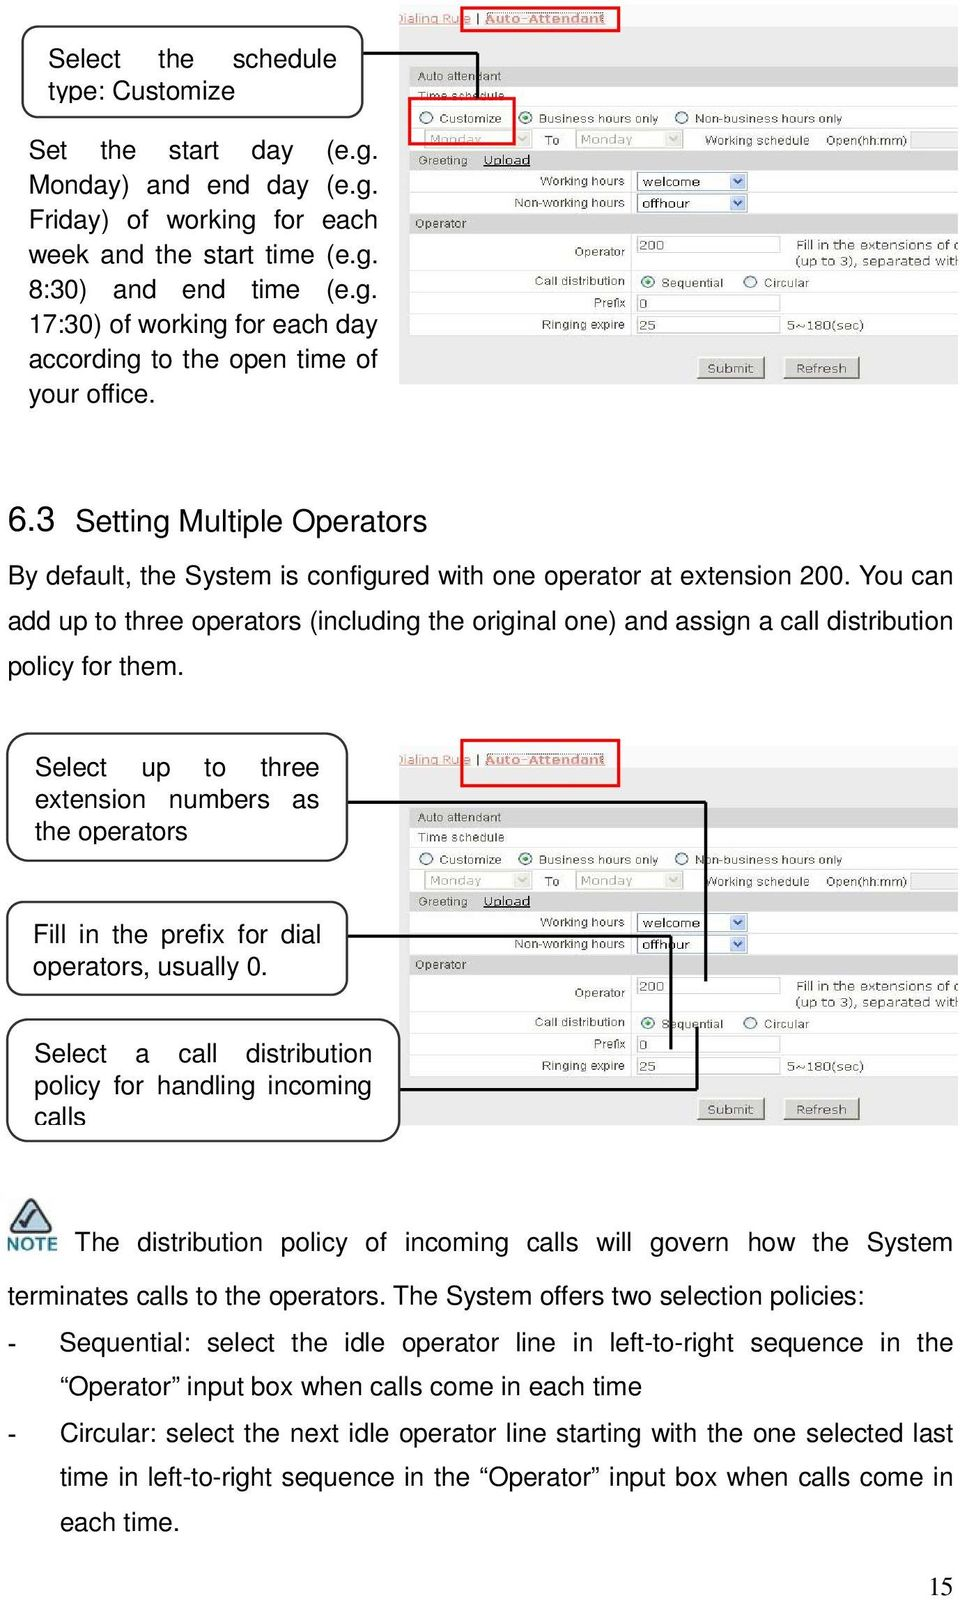 You can add up to three operators (including the original one) and assign a call distribution policy for them.